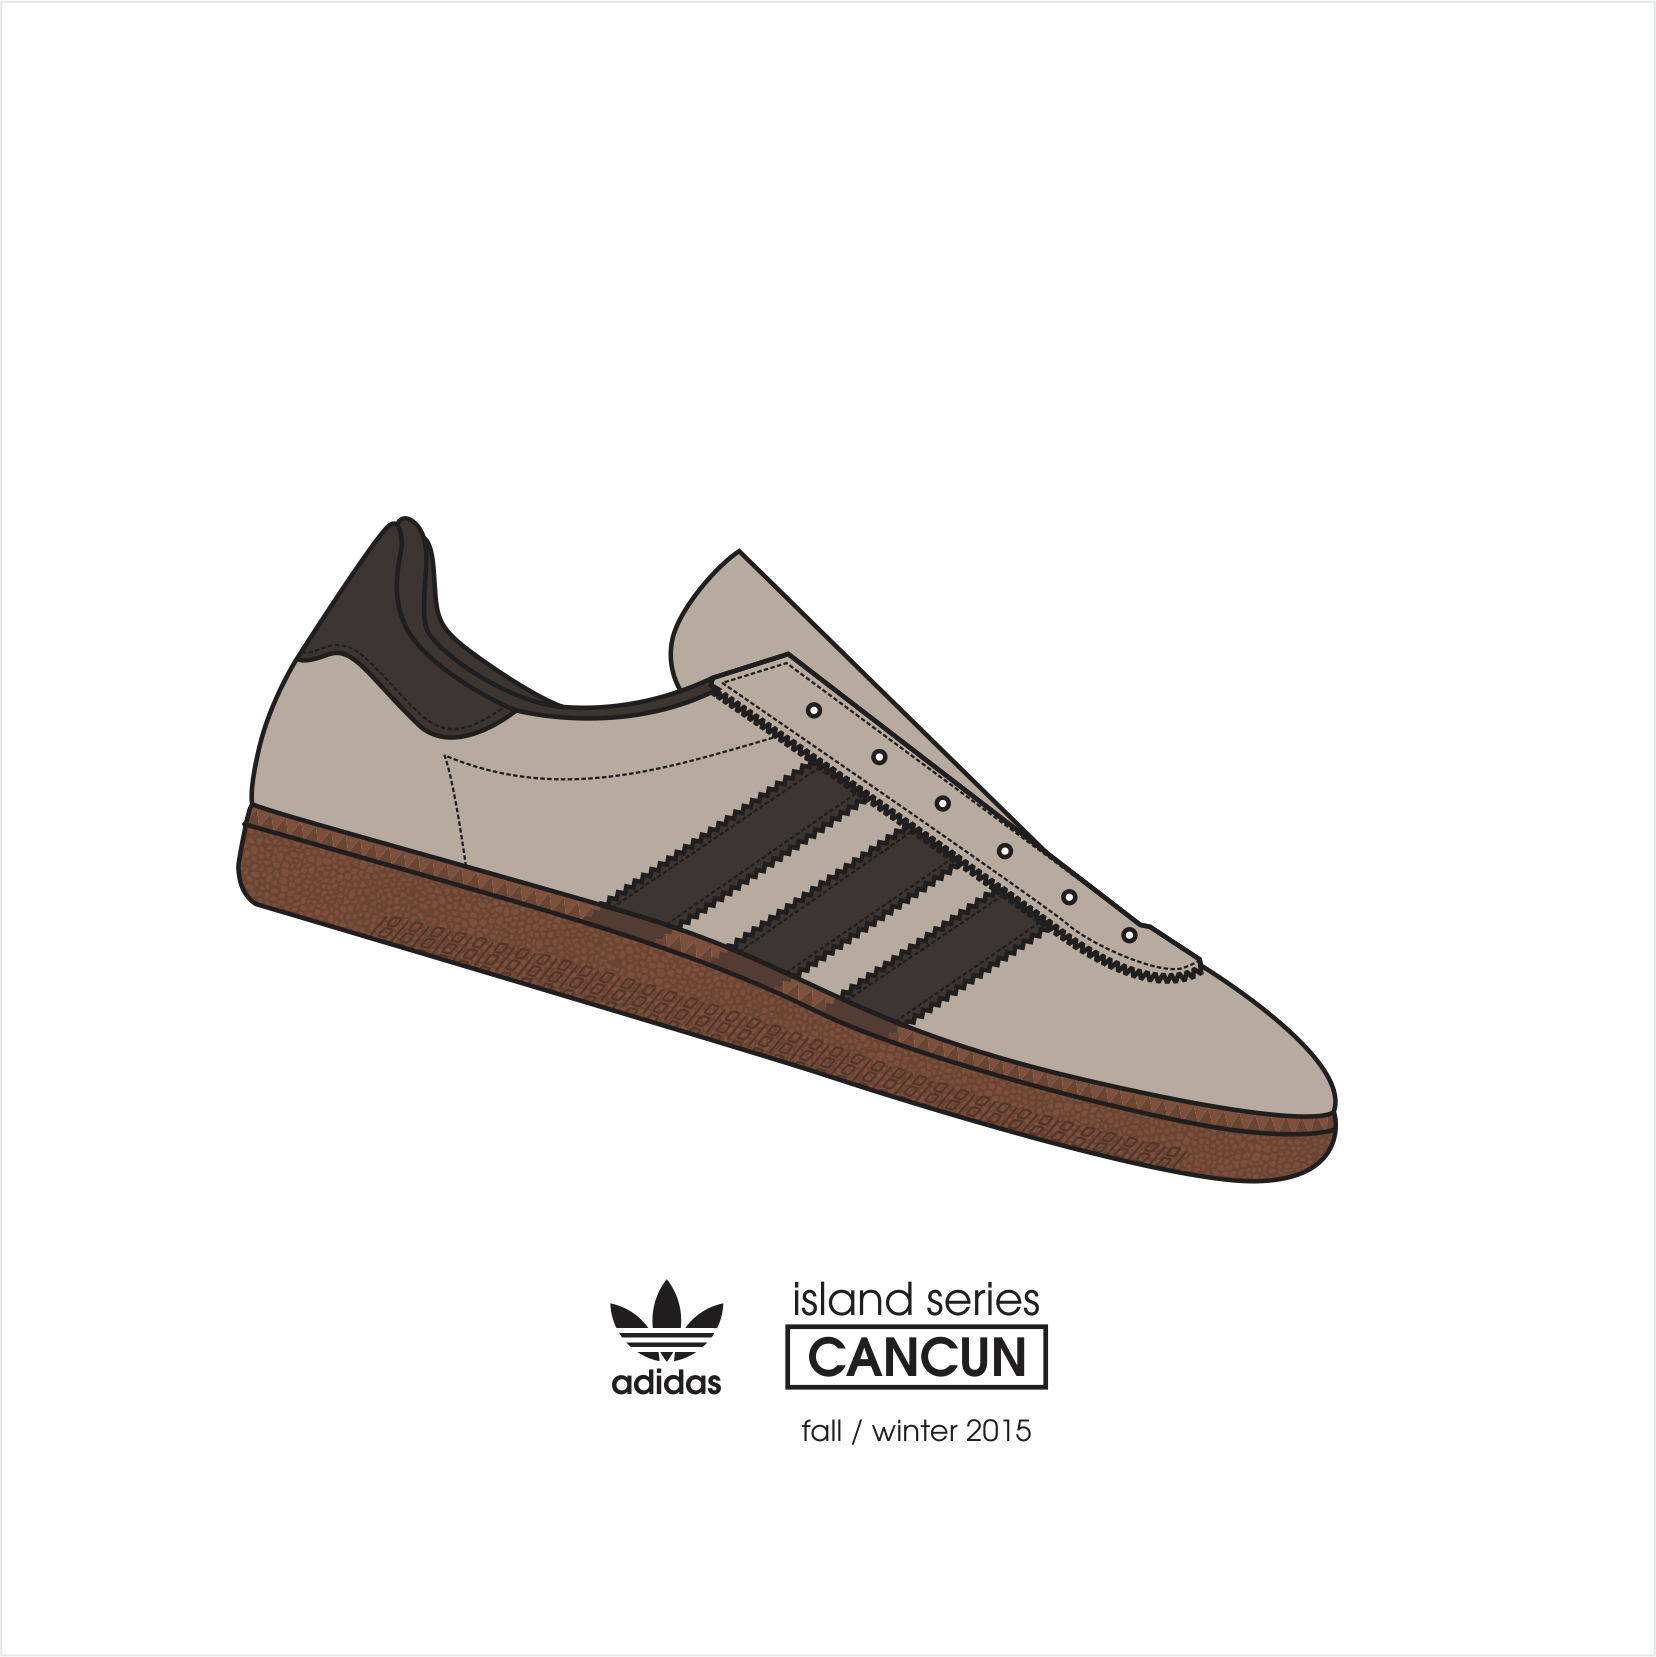 adidas cancun island series fall winter 2015 kicks illustration adidasoriginal adidas adidascancun adidasislandserie sepatu adidas sepatu adidas pinterest